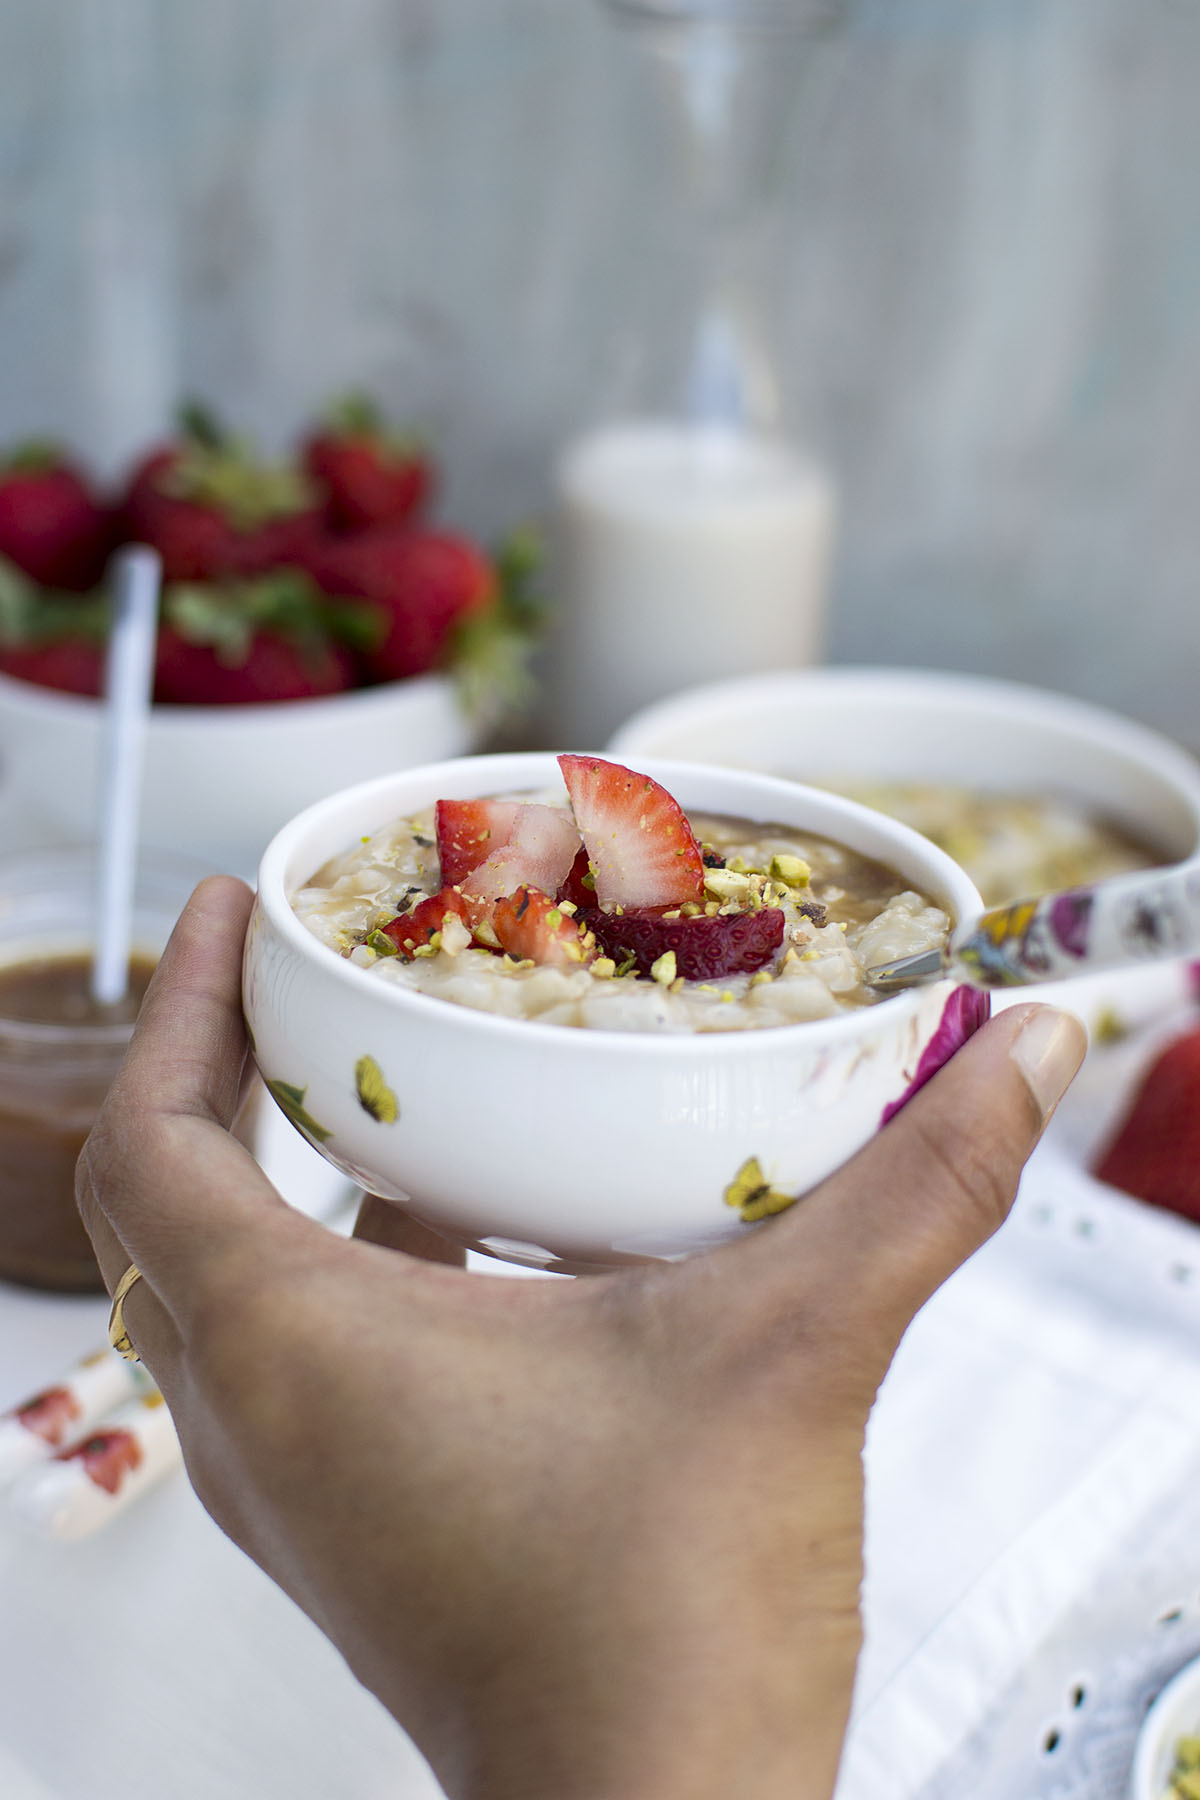 Hand holding a bowl with dessert topped with berries and nuts